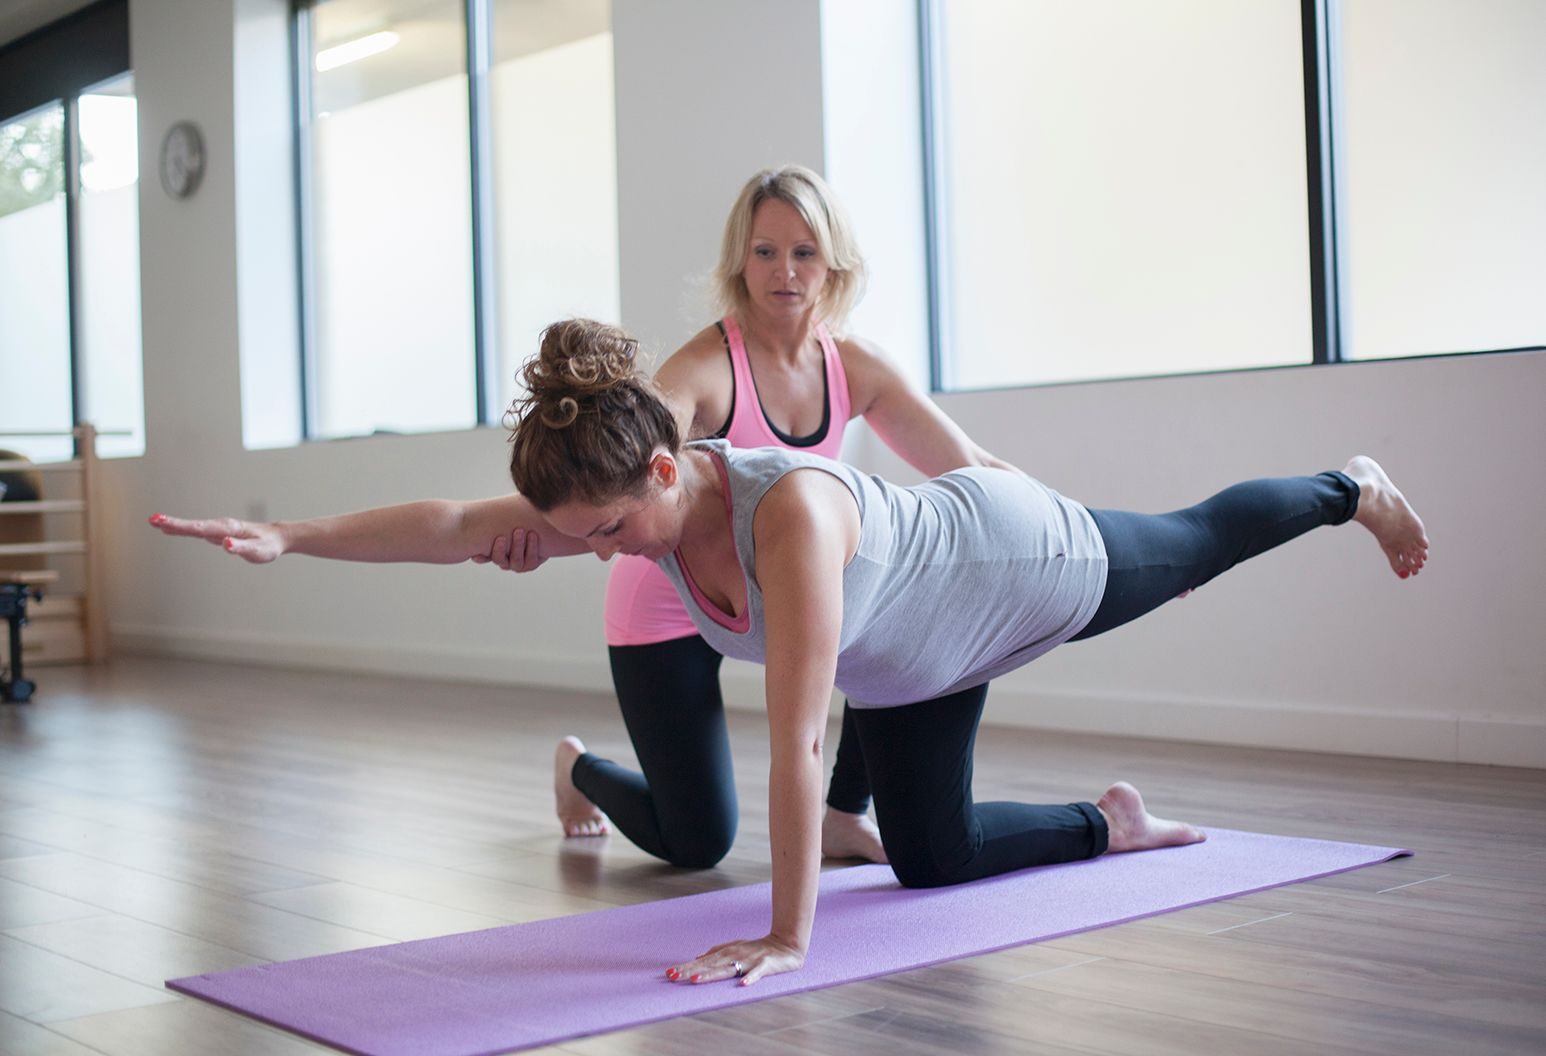 Physical benefits of yoga for women include increased flexibility, decreased depression, better strength and balance.